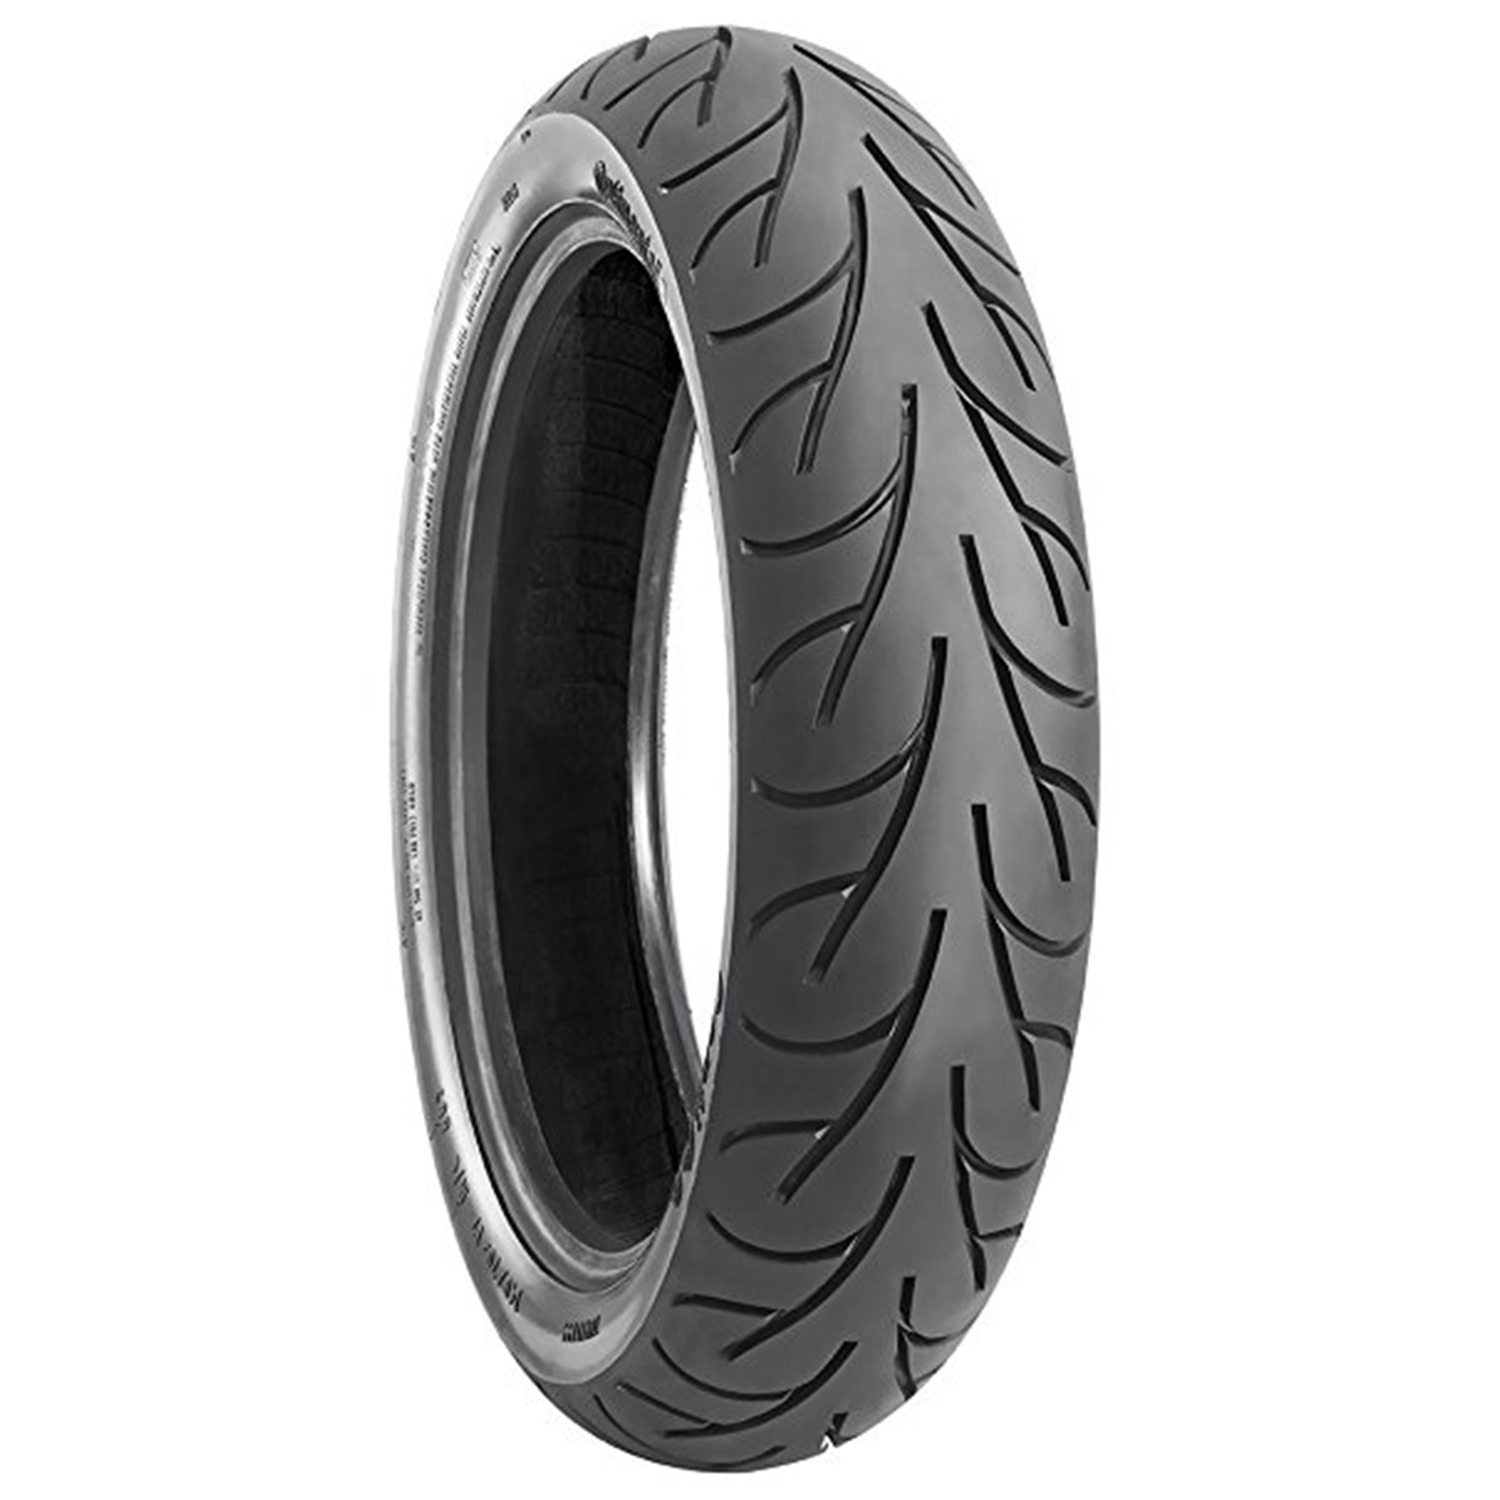 Metro RAMBO 120/80 17 Requires Tube Rear Two-Wheeler Tyre